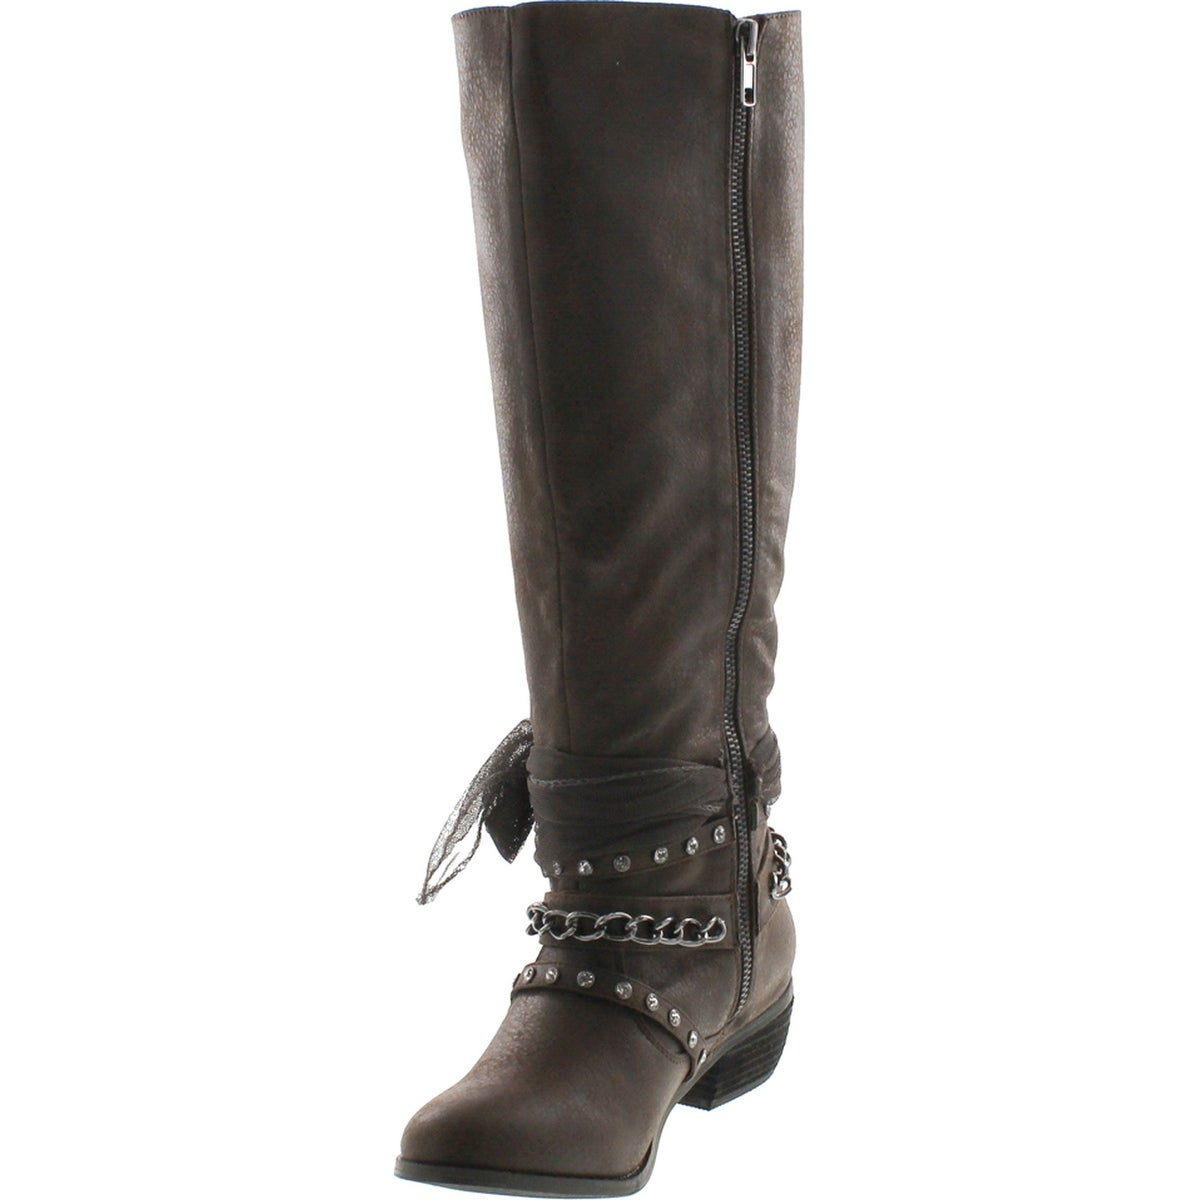 0ebc56a73e8 Shop Not Rated Women s Tualamne Winter Boots - Grey - Free Shipping Today -  Overstock.com - 22817632